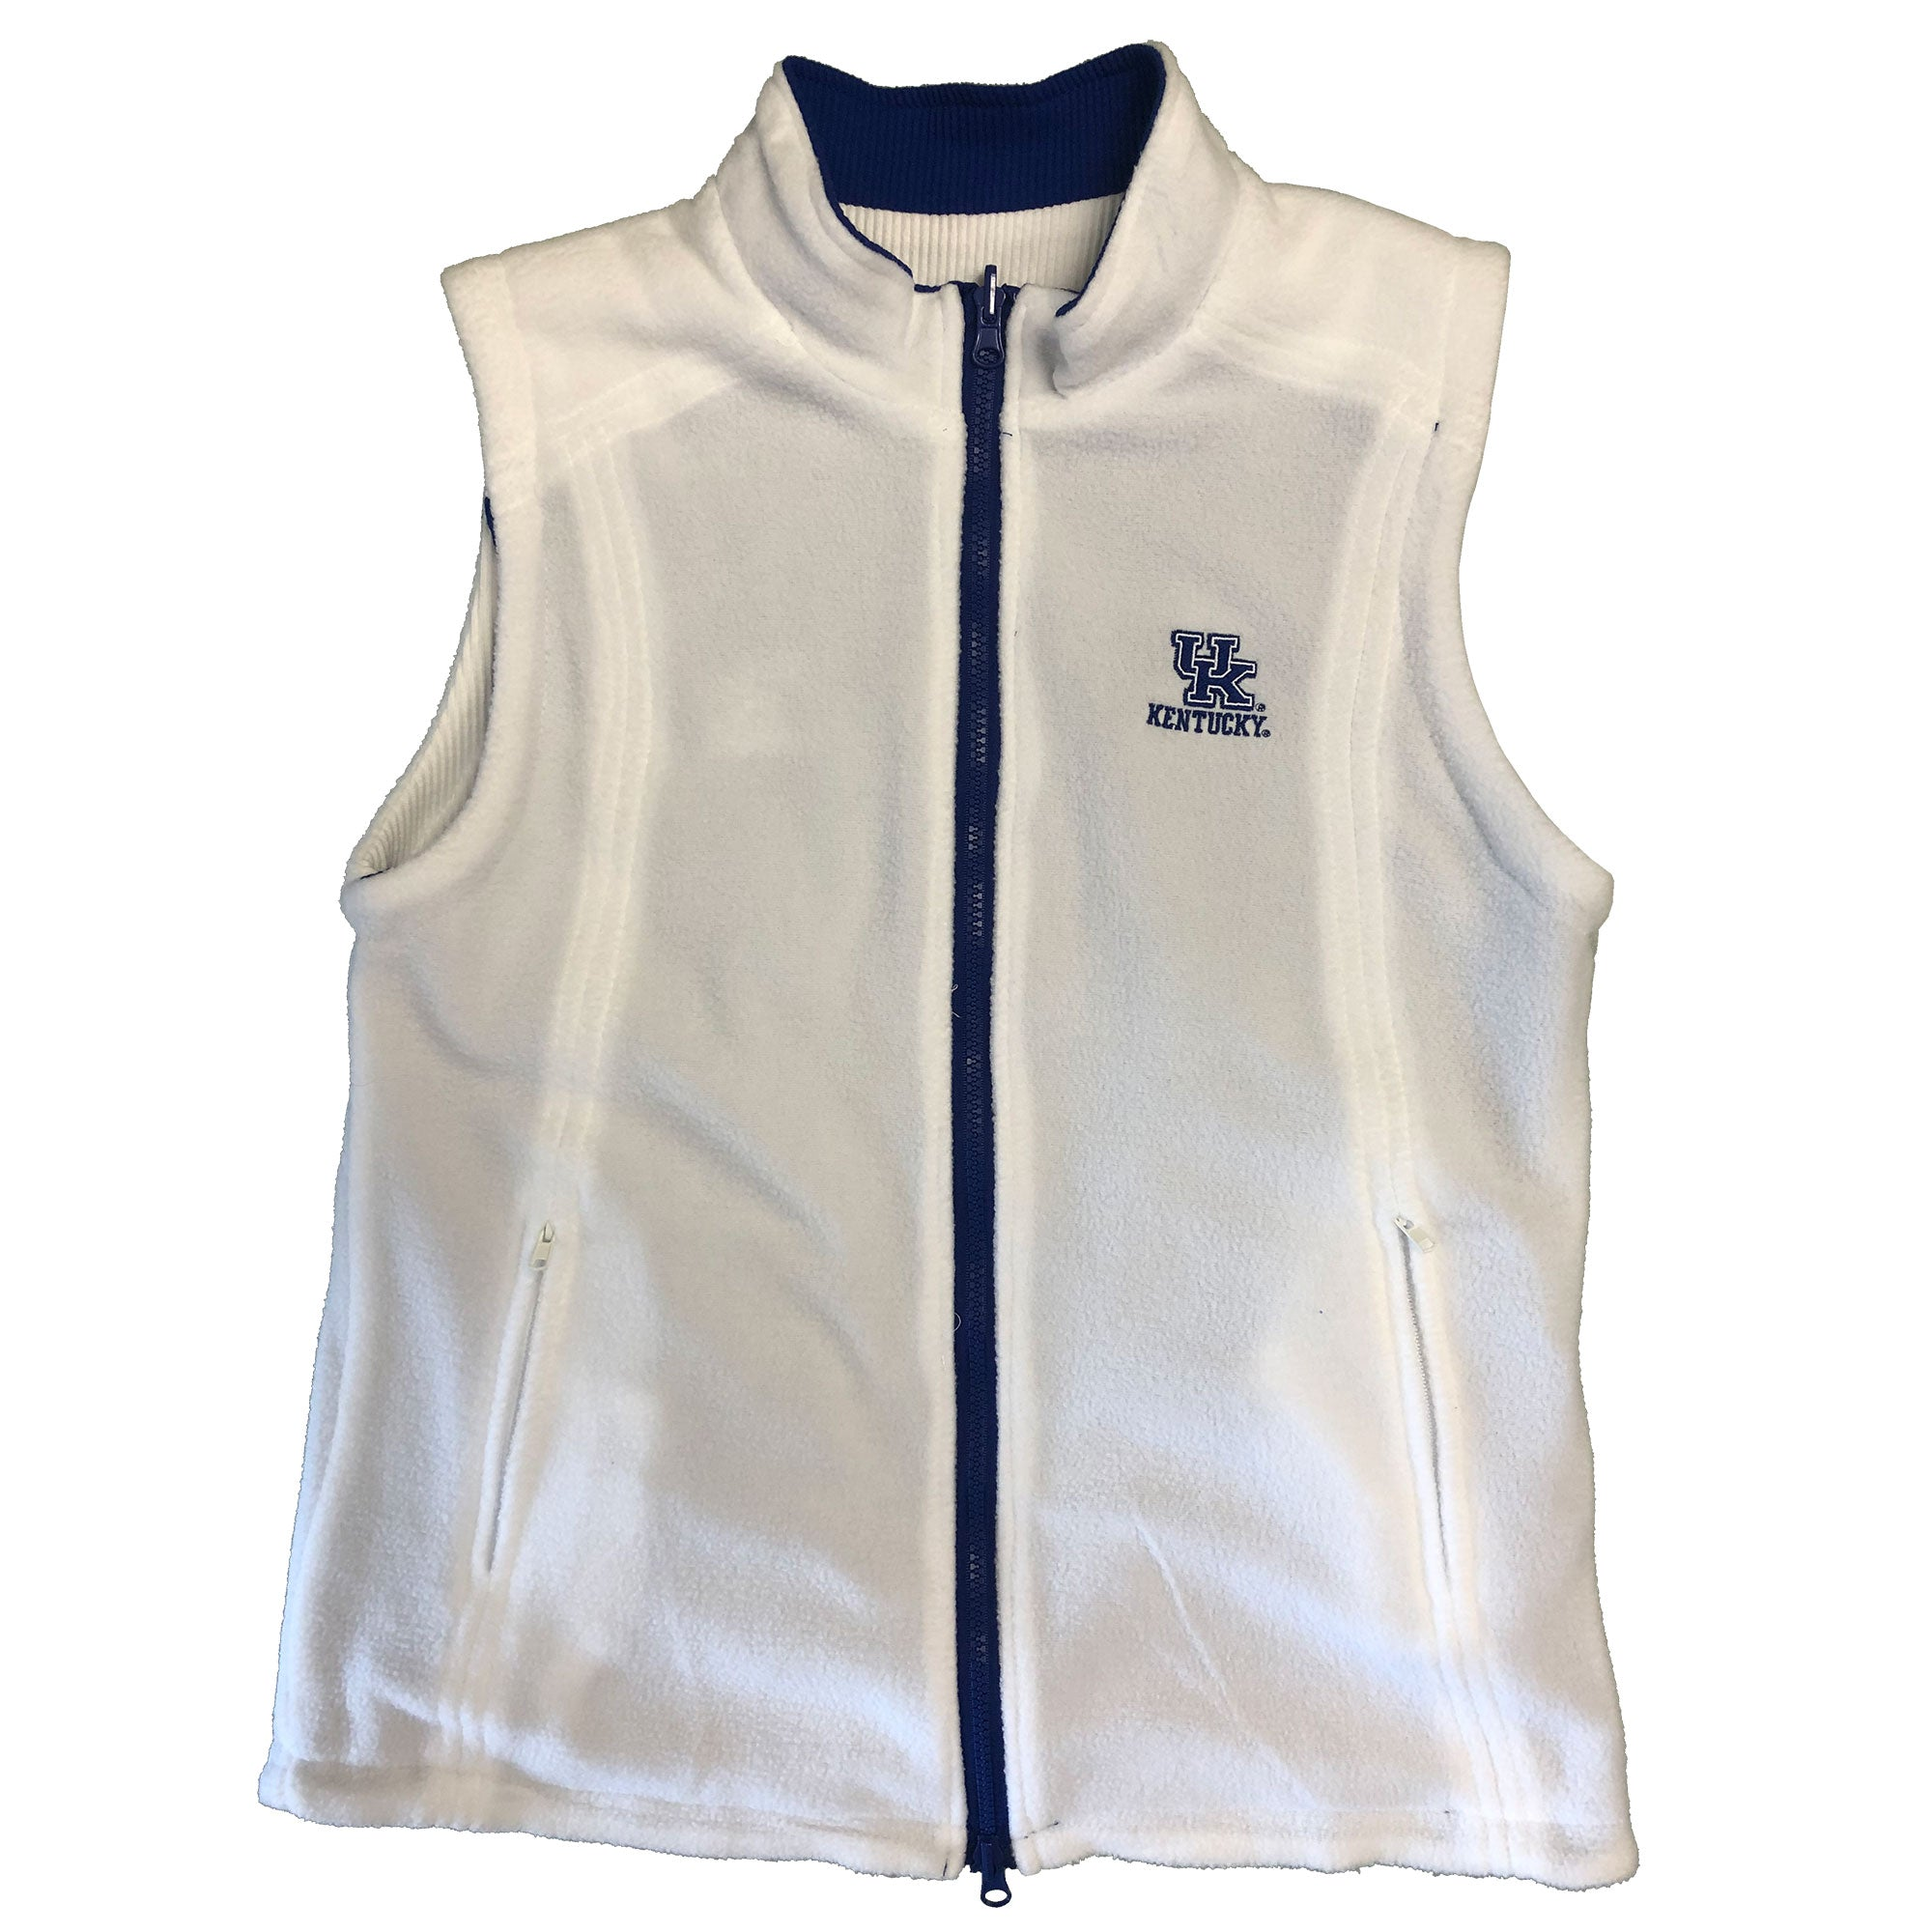 KENTUCKY WILDCATS REVERSIBLE JOSIE VEST